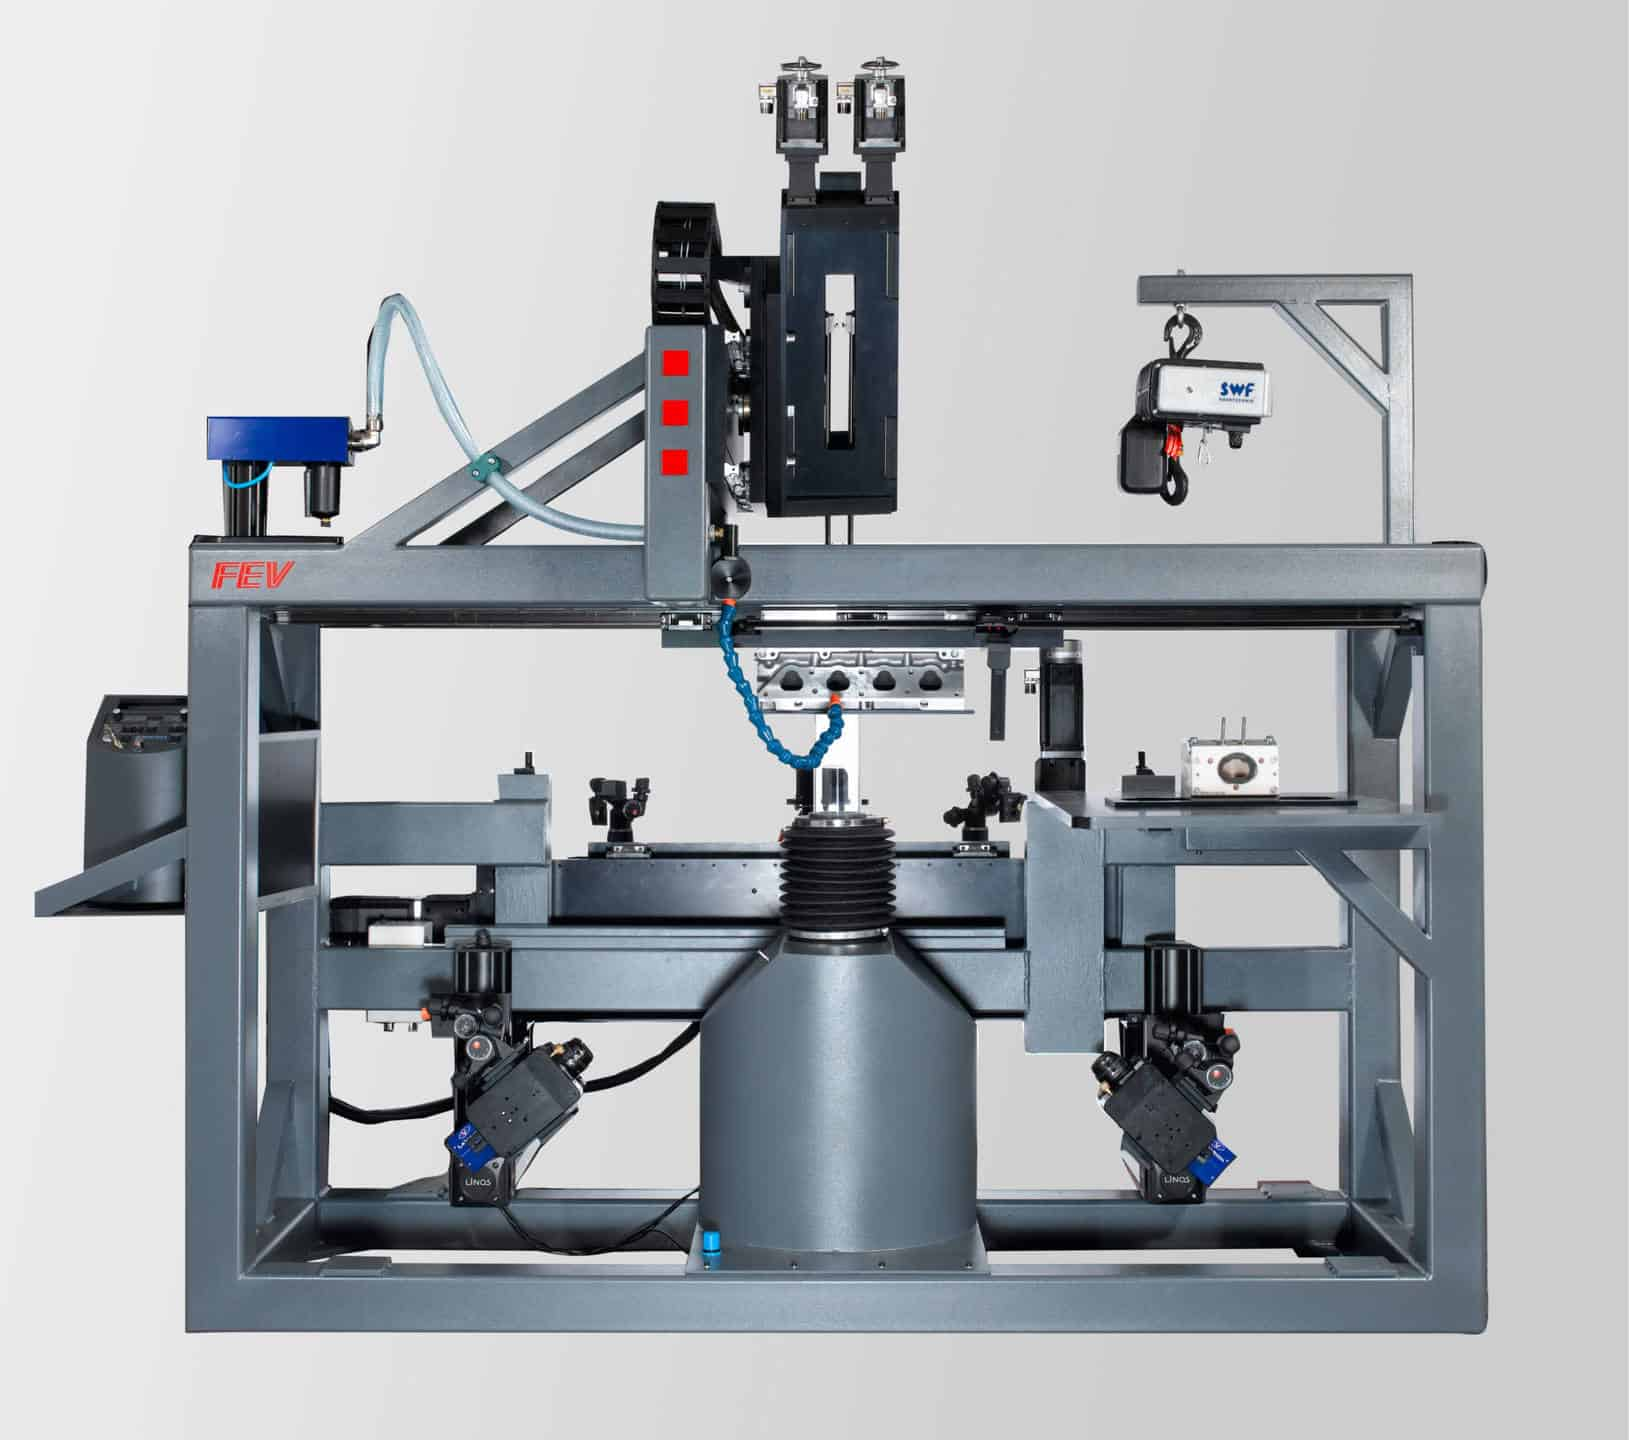 FEV Special Test Benches for Flow, Injection and Turbo